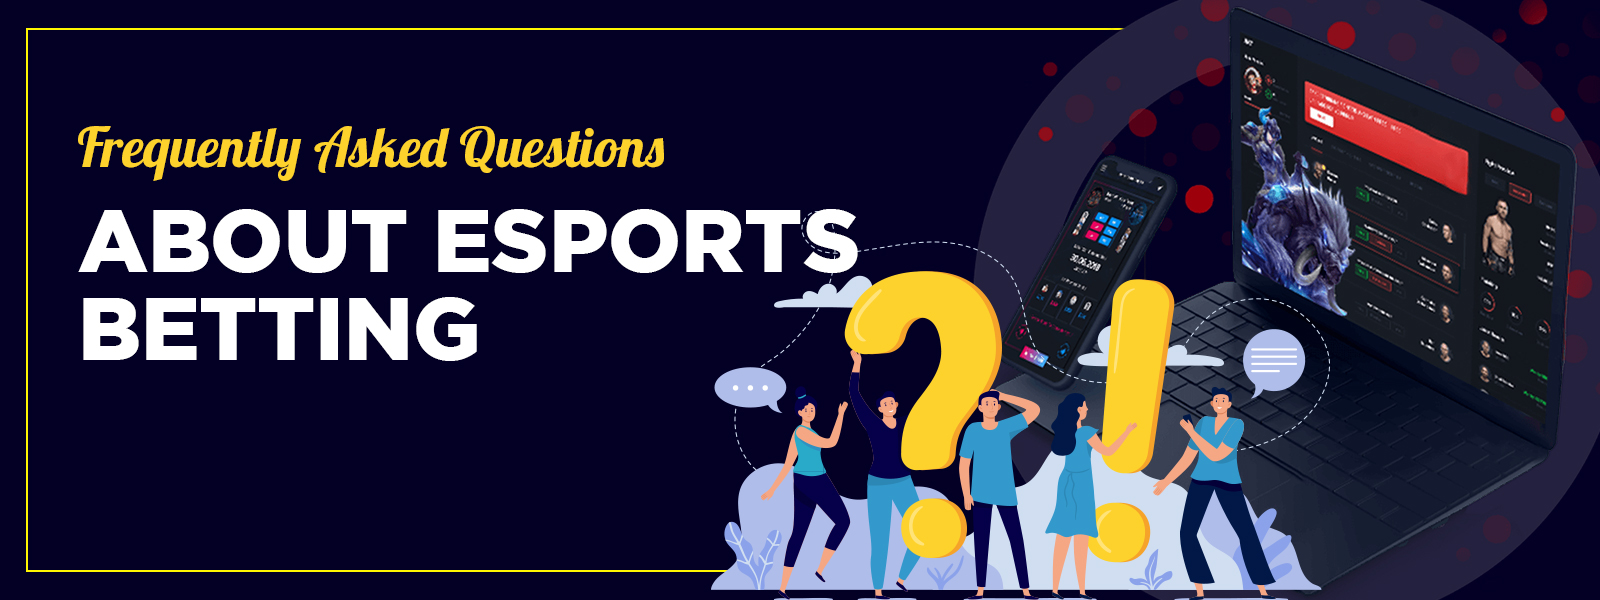 Frequently Asked Questions About eSports Betting